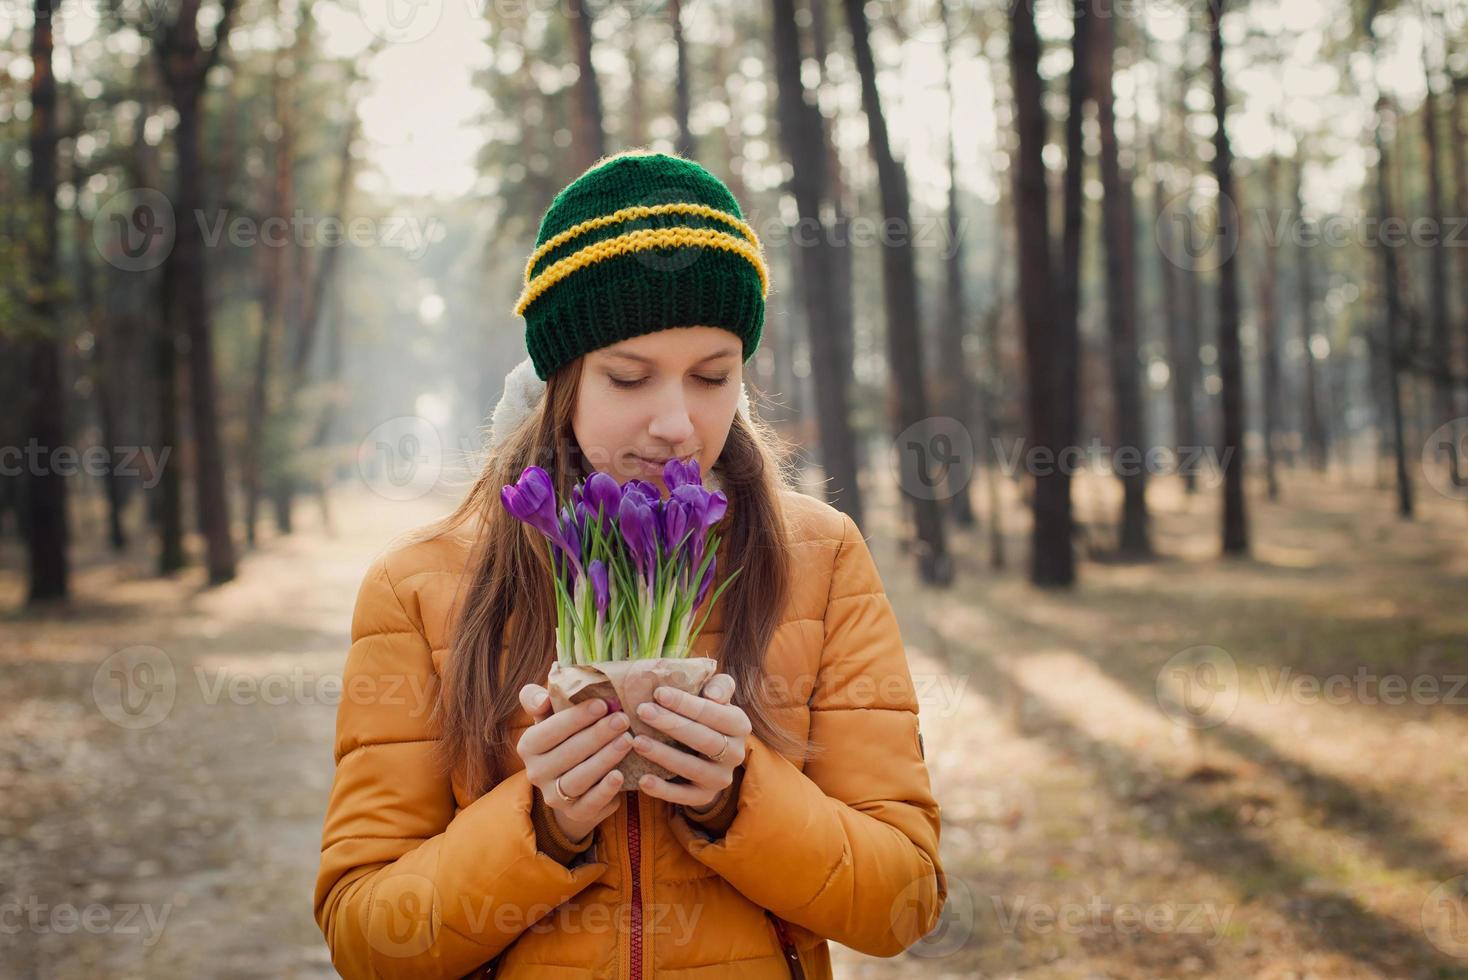 Happy woman enjoying smell of spring flowers photo